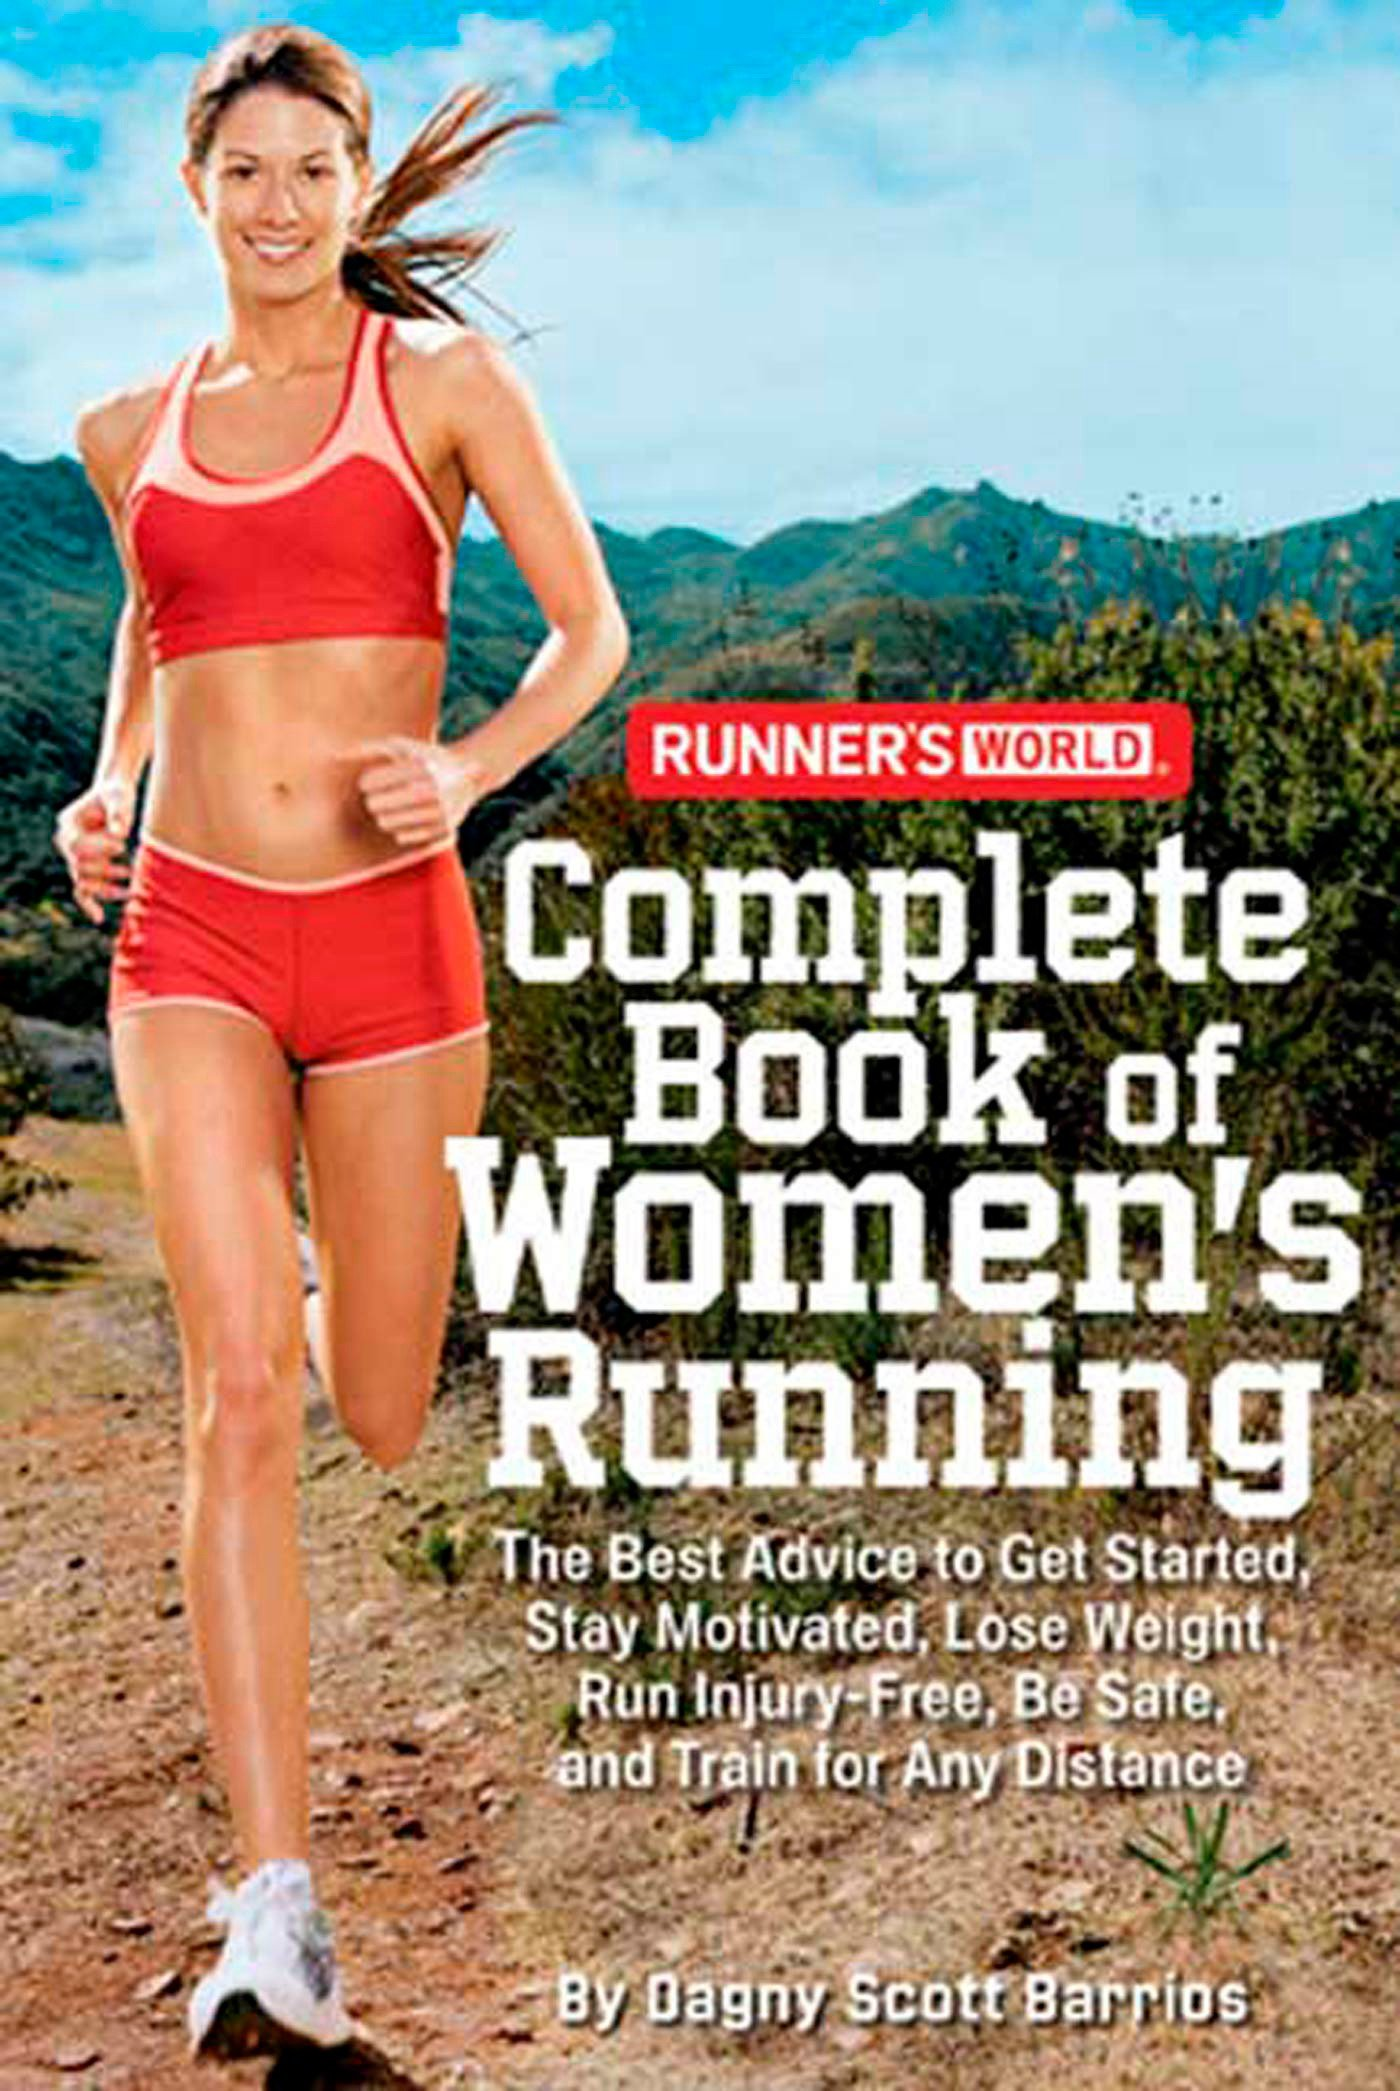 e70fb2b1dc Runner s World Complete Book of Women s Running  The Best Advice to ...